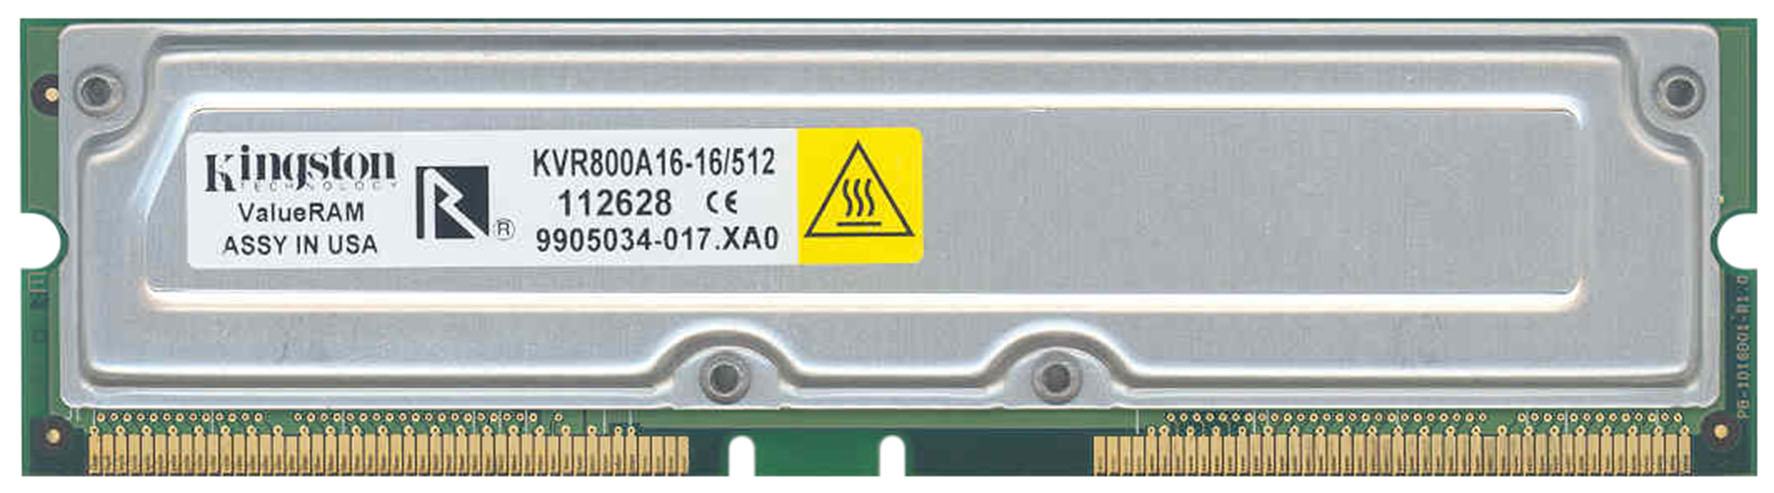 KVR800A16-16/512 Kingston 512MB Rambus PC800 800MHz non-ECC 40ns 184-Pin RDRAM RIMM Memory Module